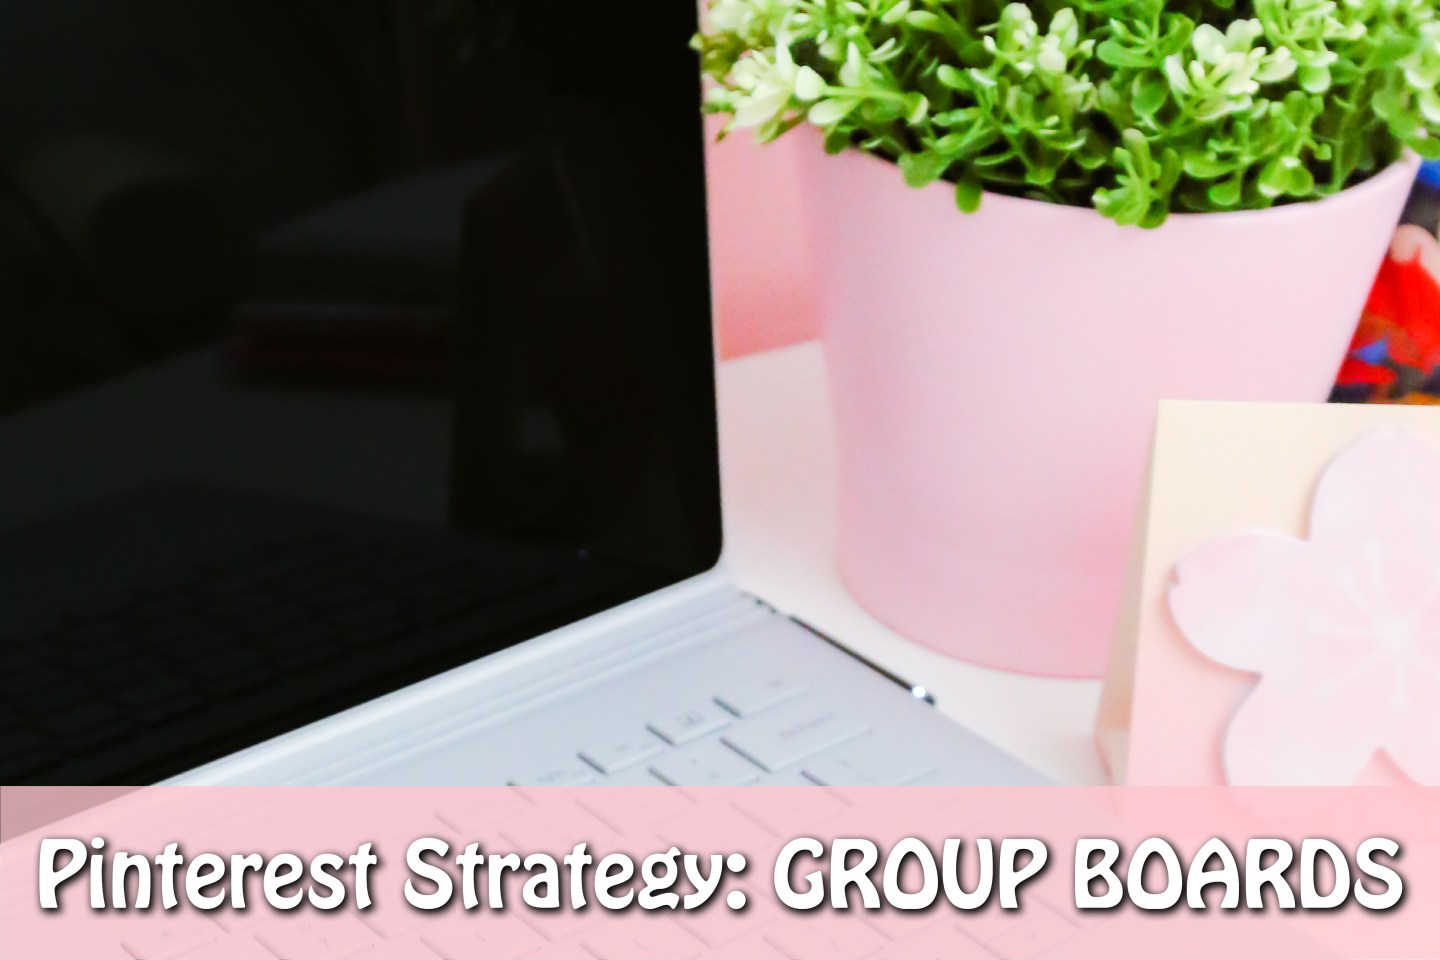 pinterest stratergy group boards monthly viewers